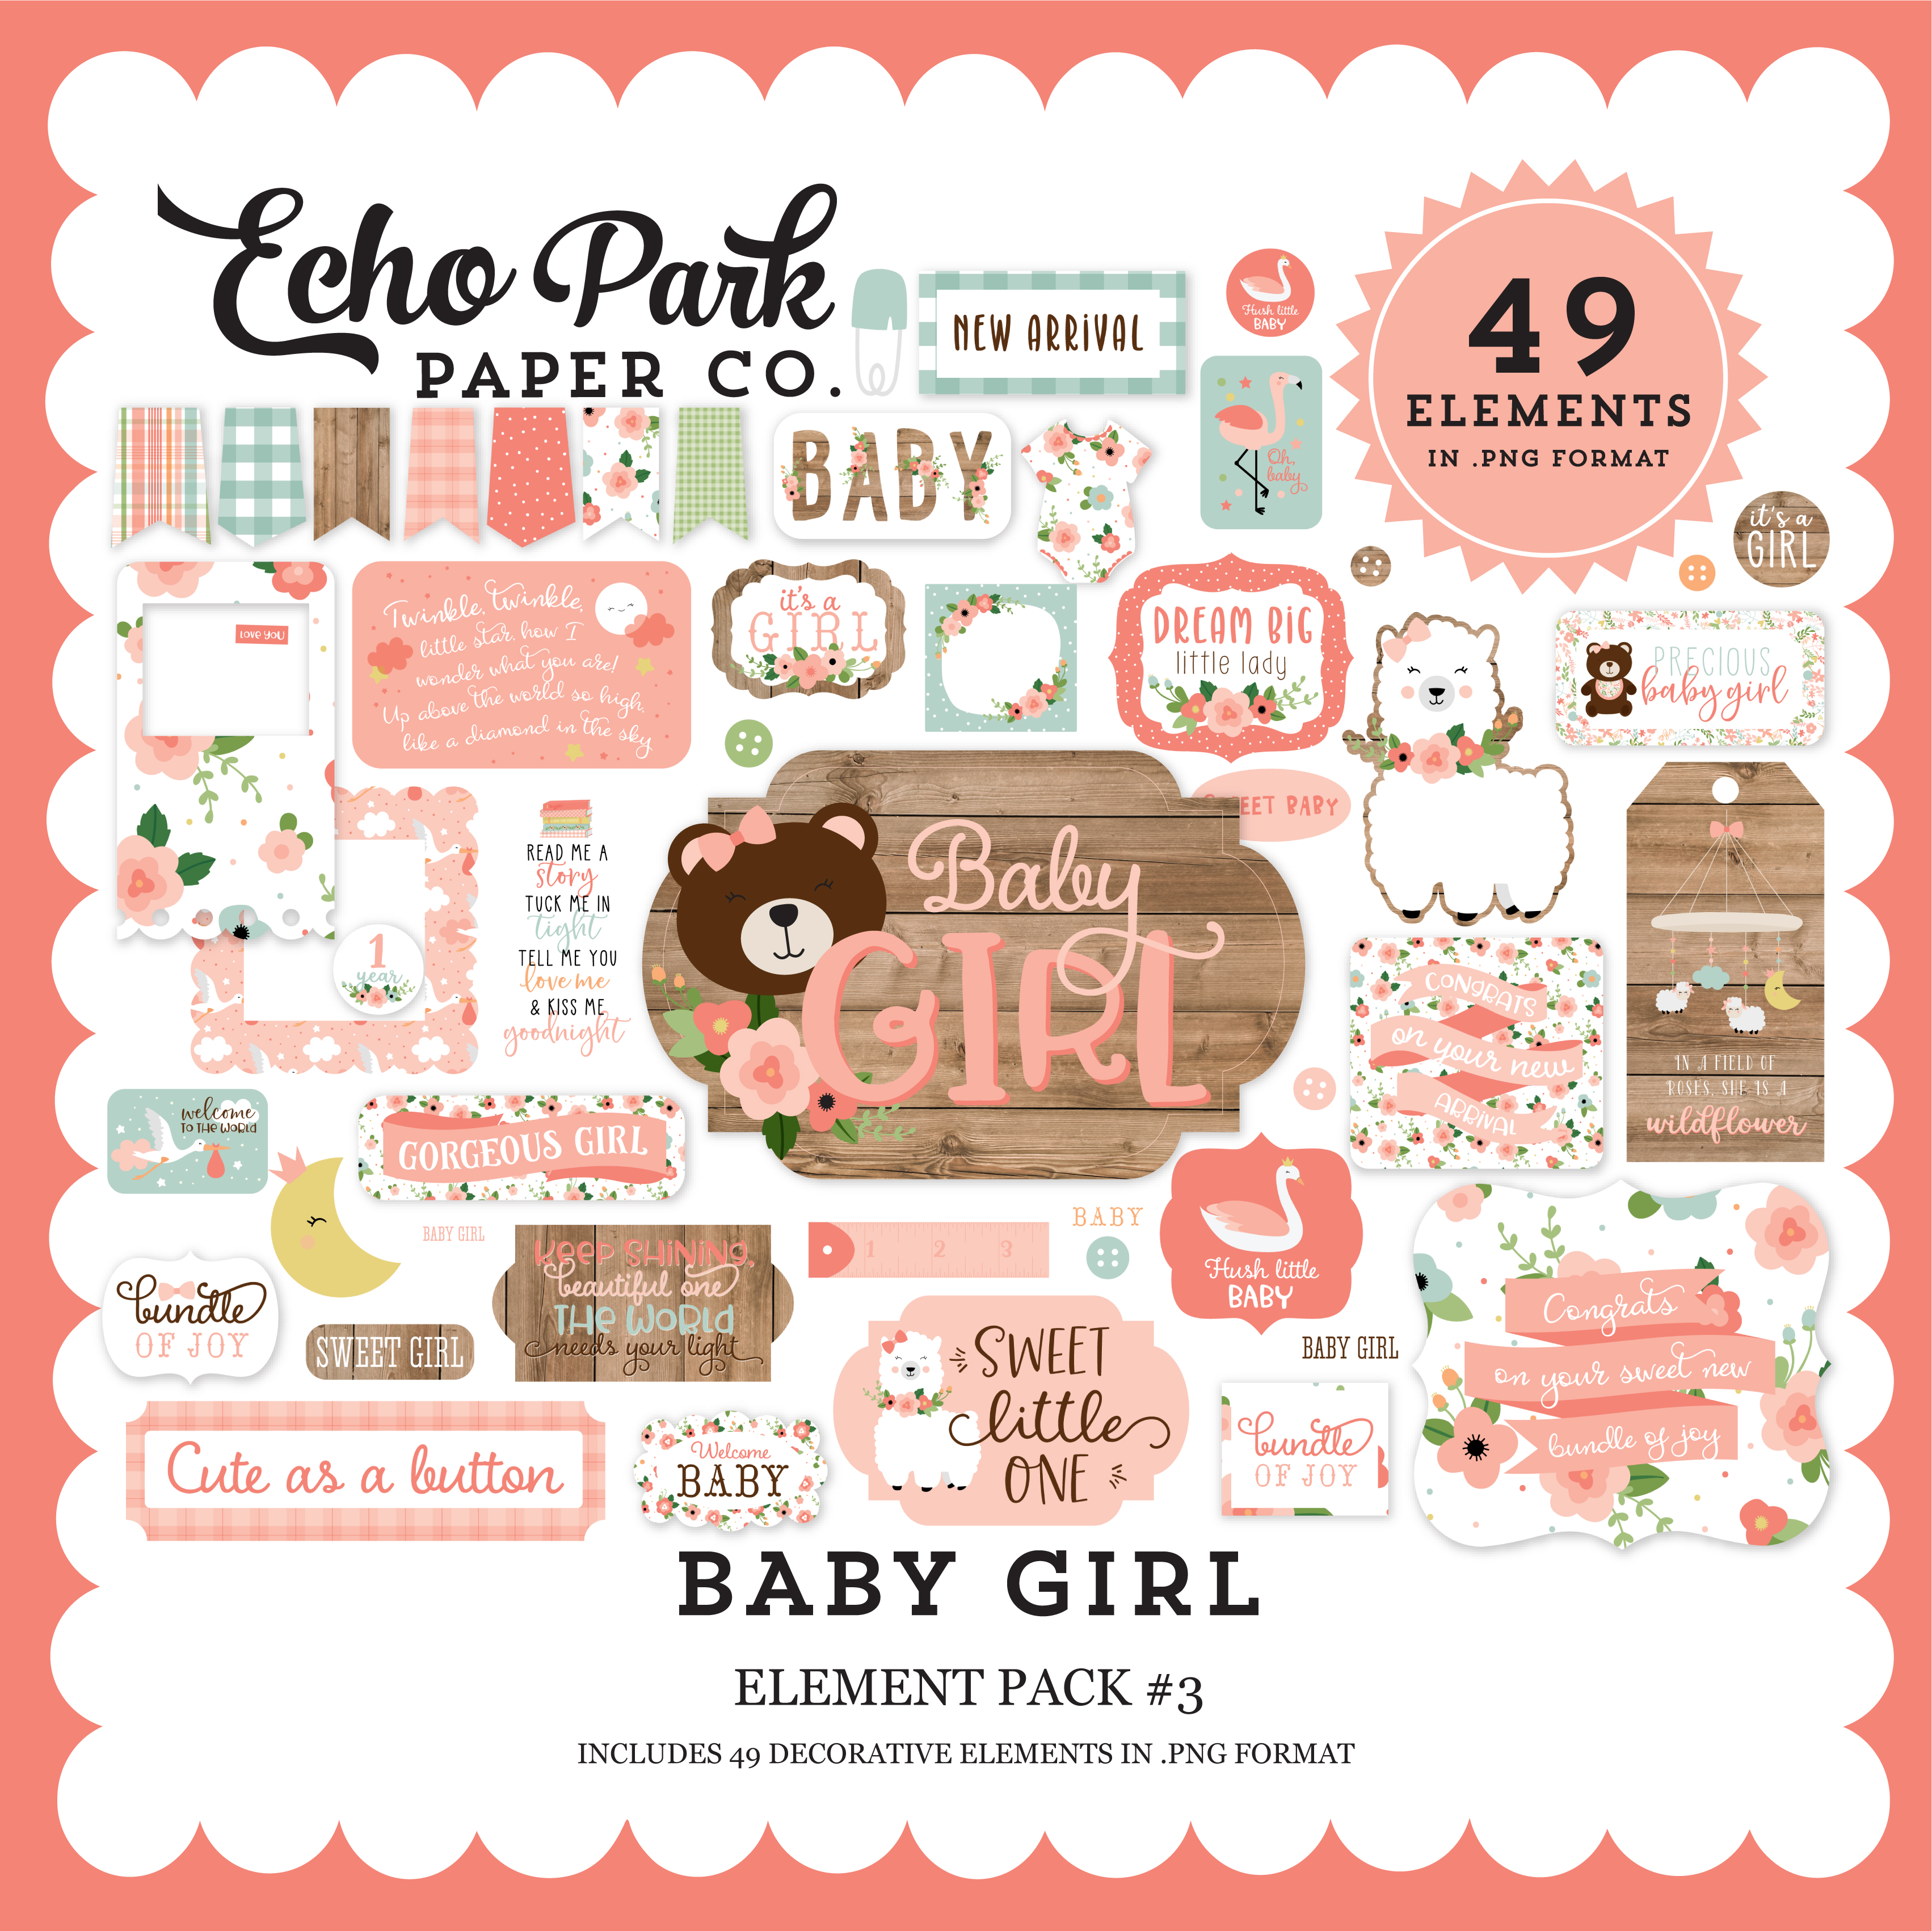 Baby Girl Element Pack #3